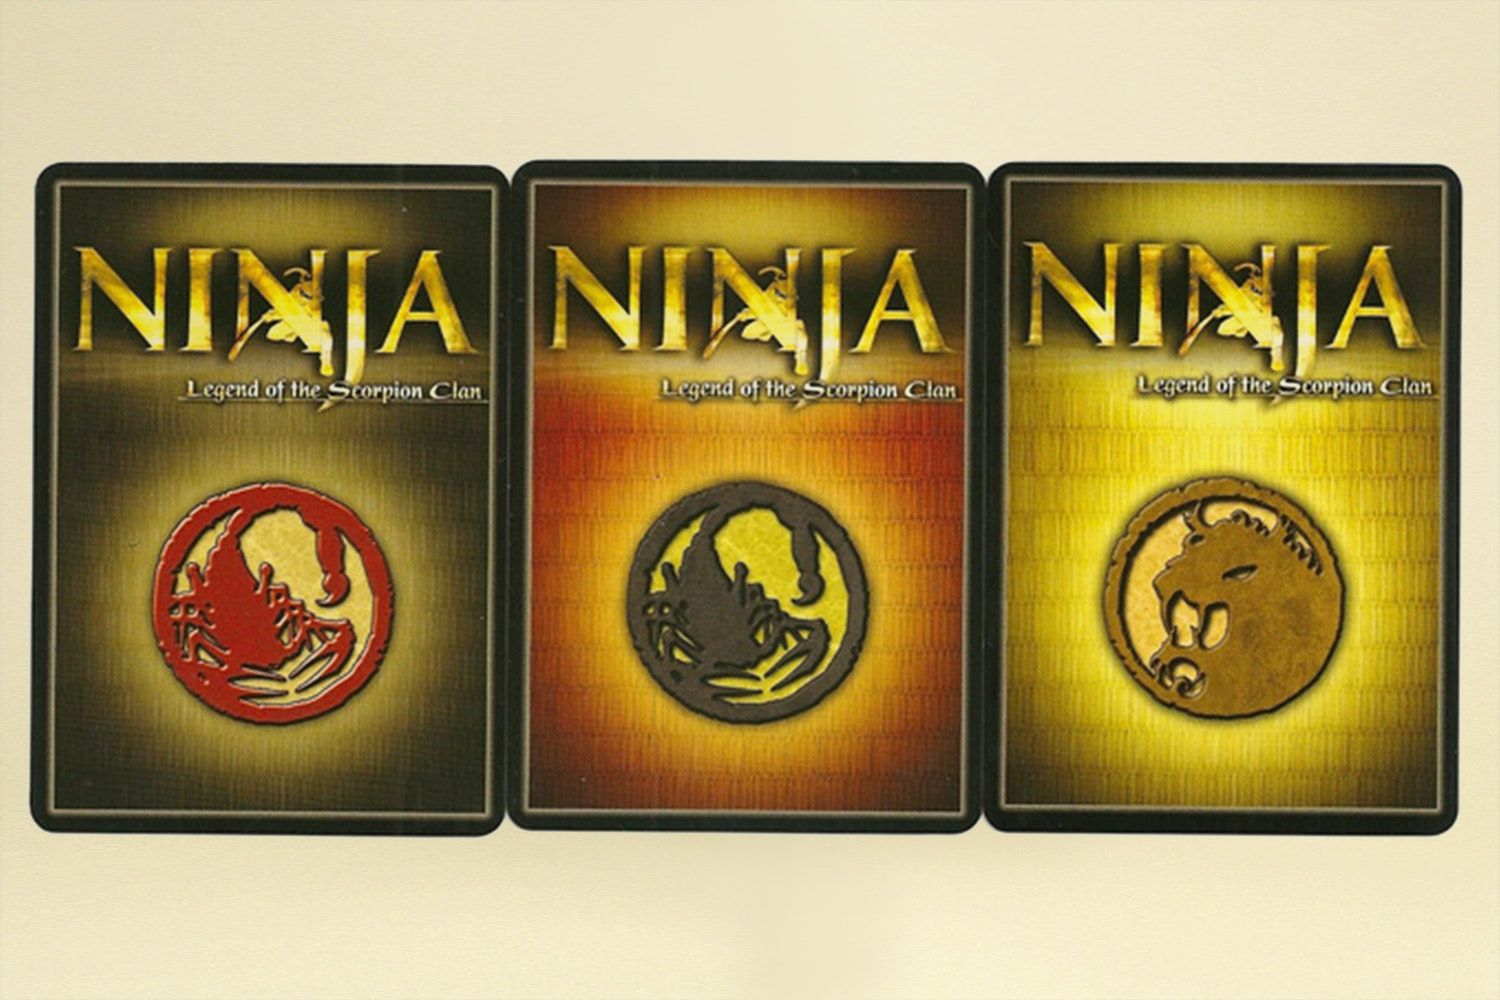 Ninja: Legend of the Scorpion Clan Board Game